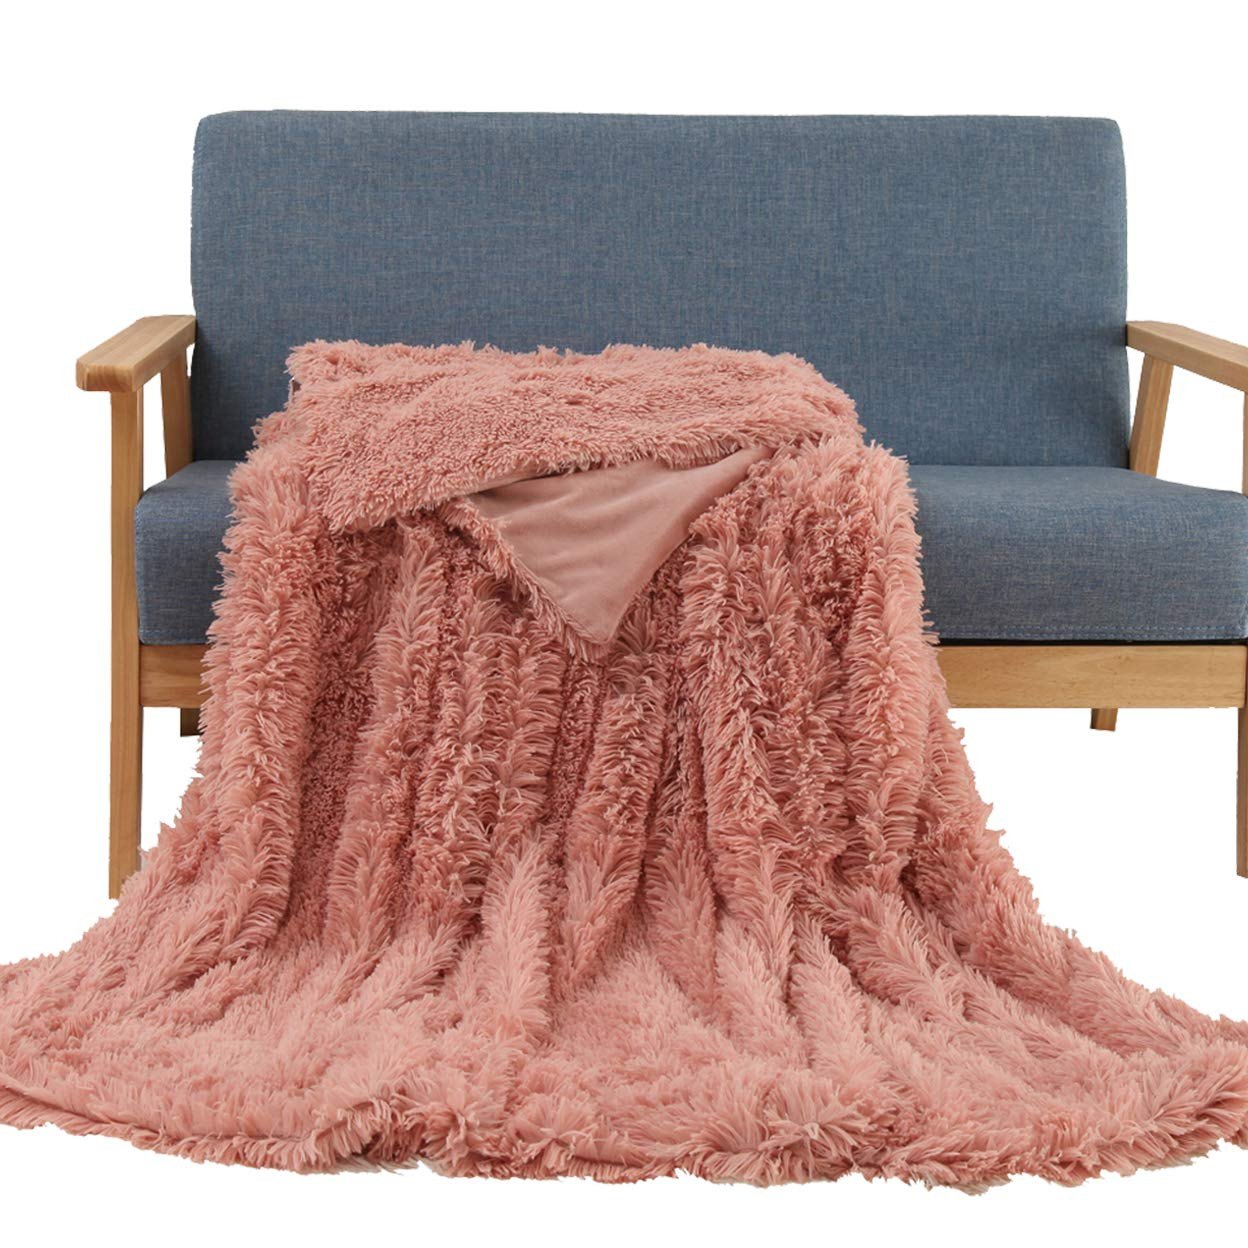 Soffte Cloud Super Soft Long Shaggy Warm Plush Fannel Blanket Throw Qulit Cozy Couch Blanket for Winter Dirty Pink(51''x63'')